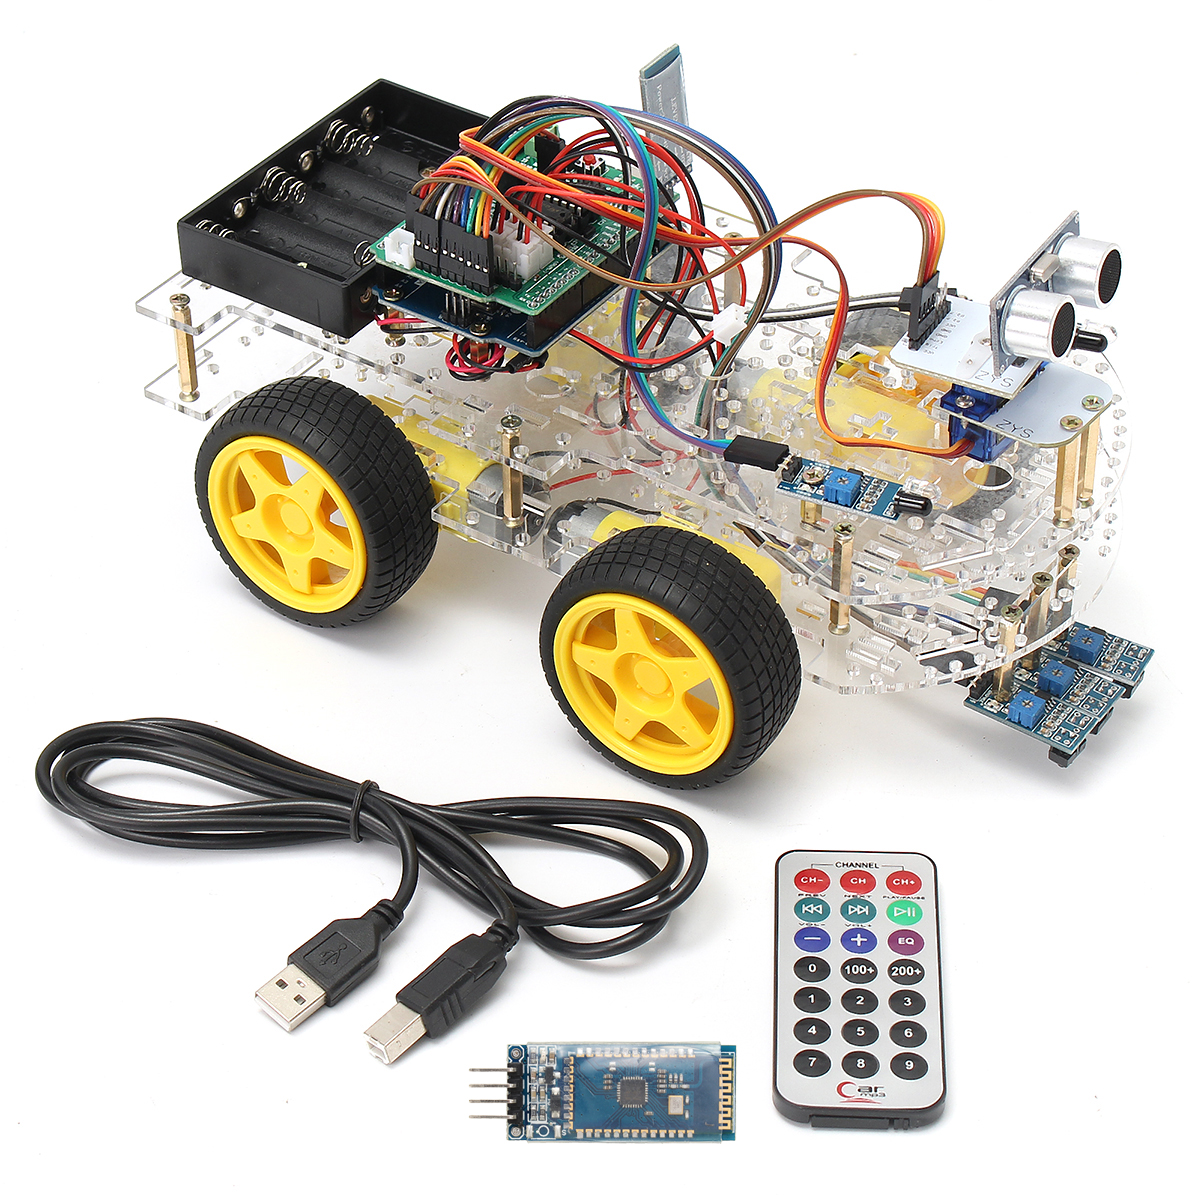 Multi-function Smart Car Kit Bluetooth Chassis Suit Tracking Compatible Uno R3 Diy Rc Electronic Toy Robot Reliable Performance Active Components